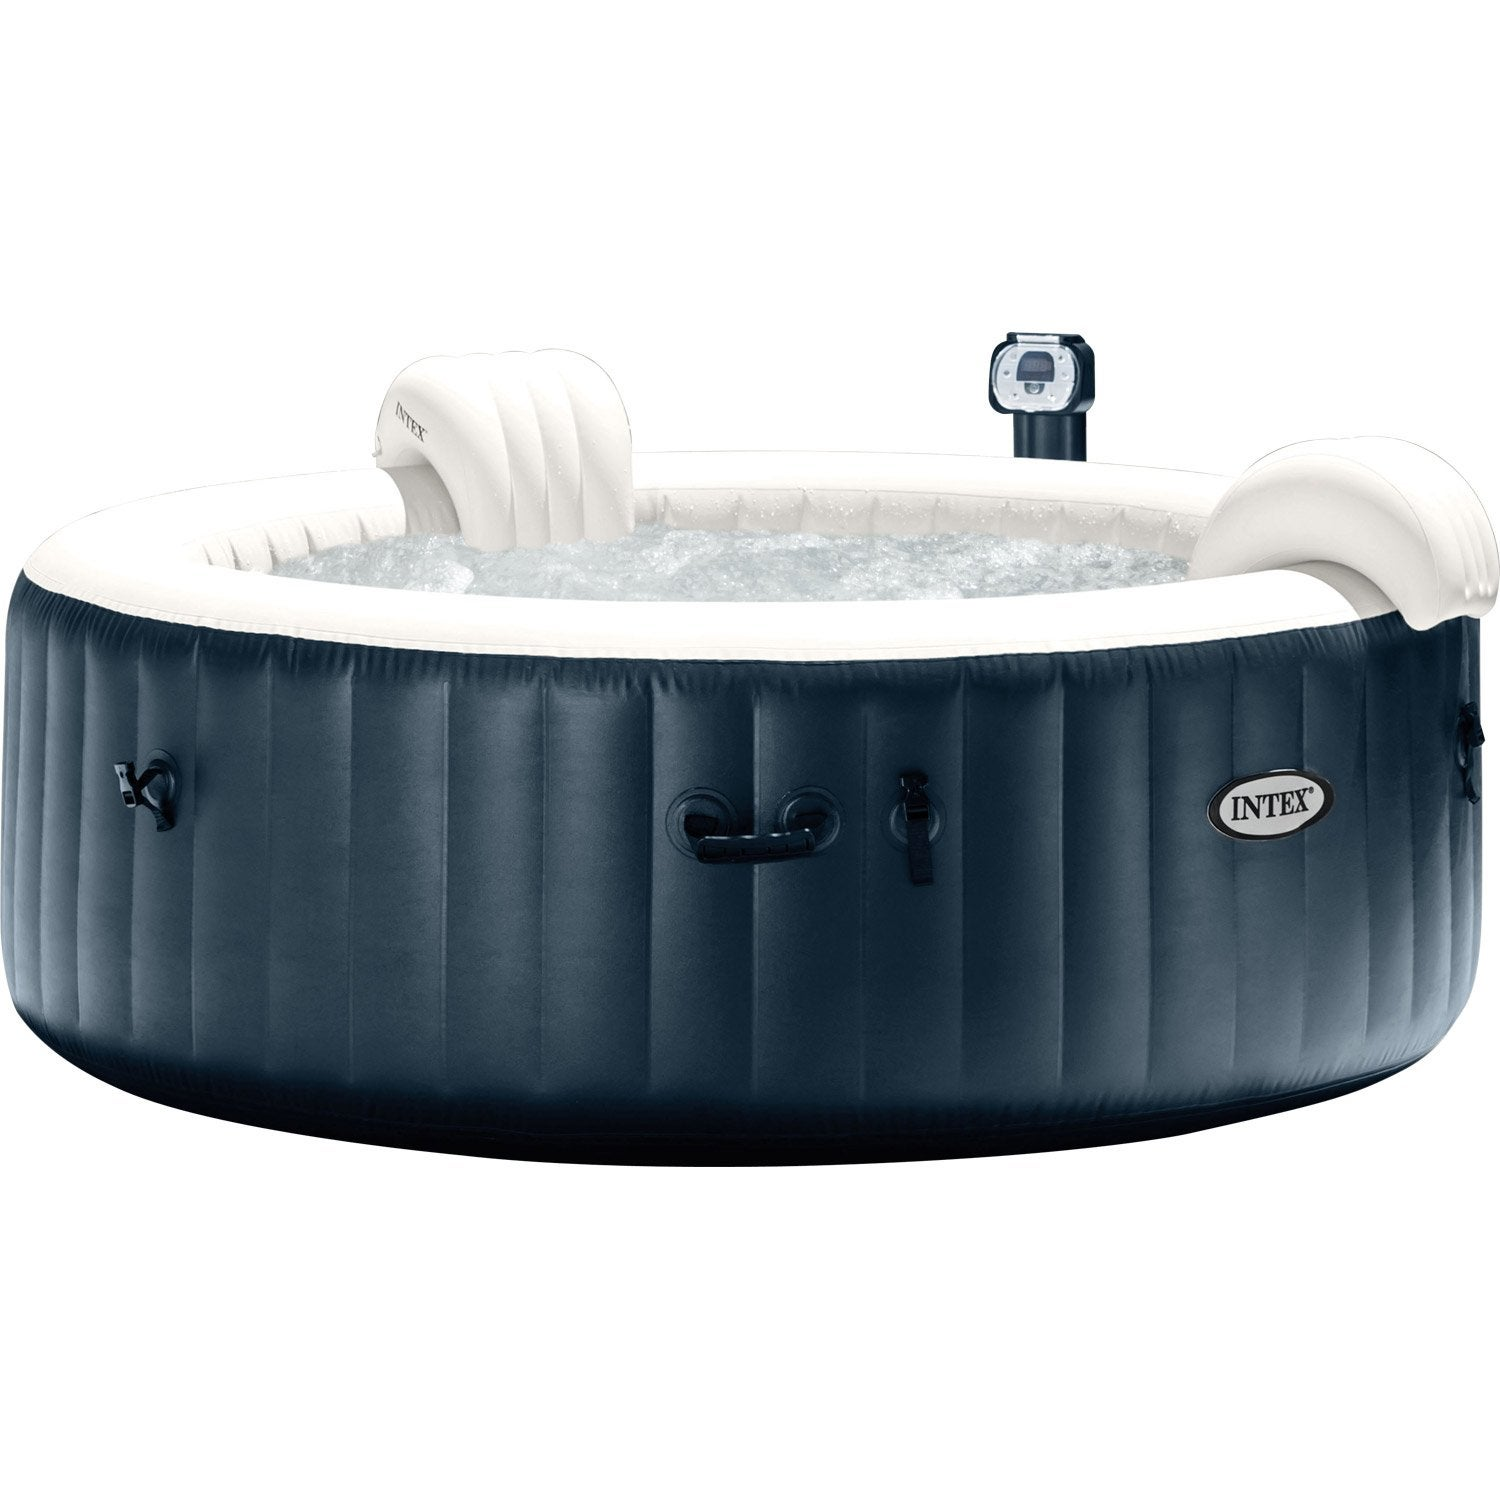 jacuzzi gonflable brico banc gonflable intex upure spa rondu with jacuzzi gonflable brico. Black Bedroom Furniture Sets. Home Design Ideas